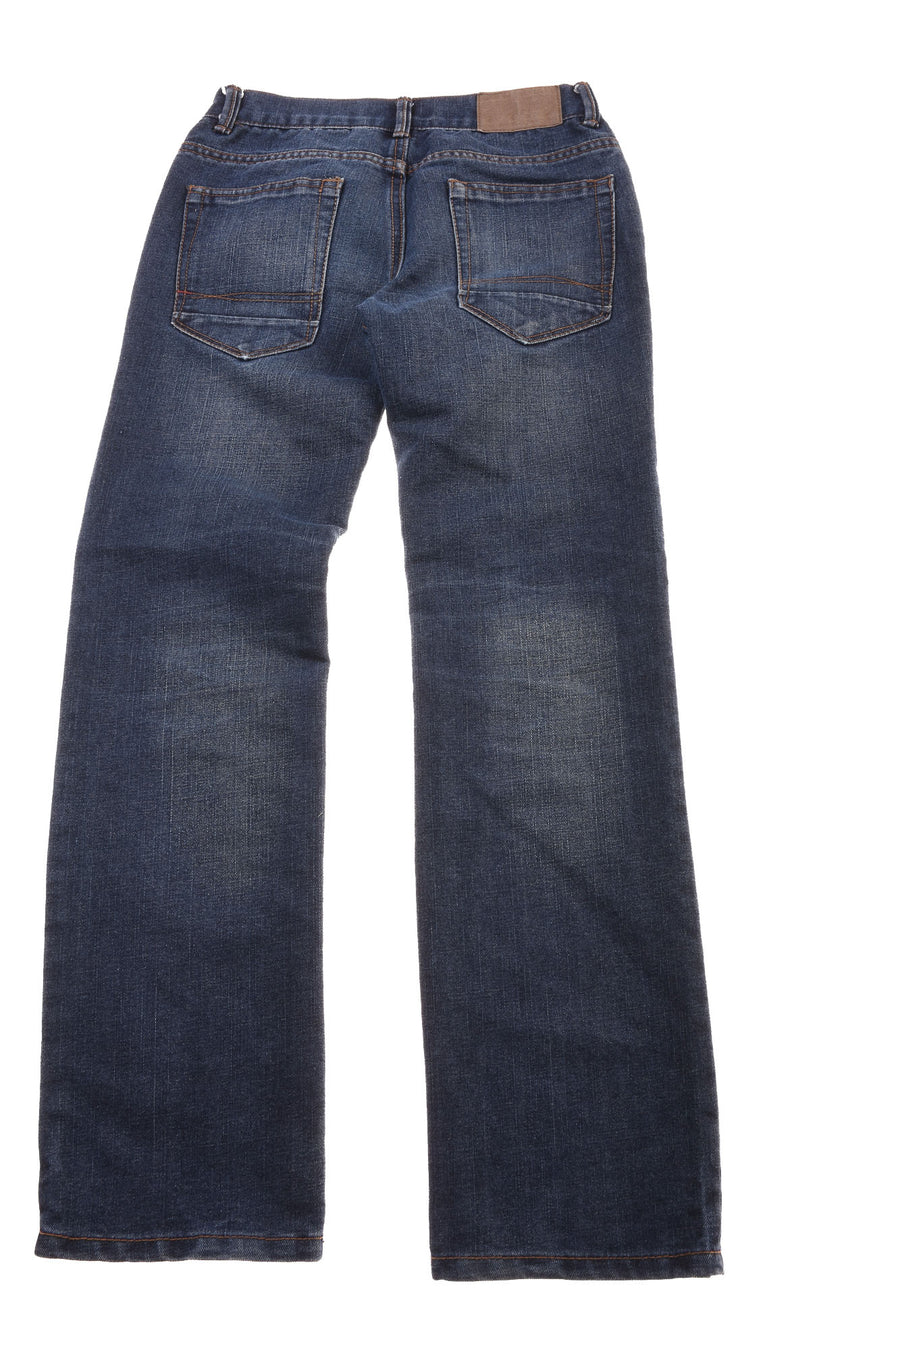 USED Tommy Hilfiger Boy's Jeans 10 Blue